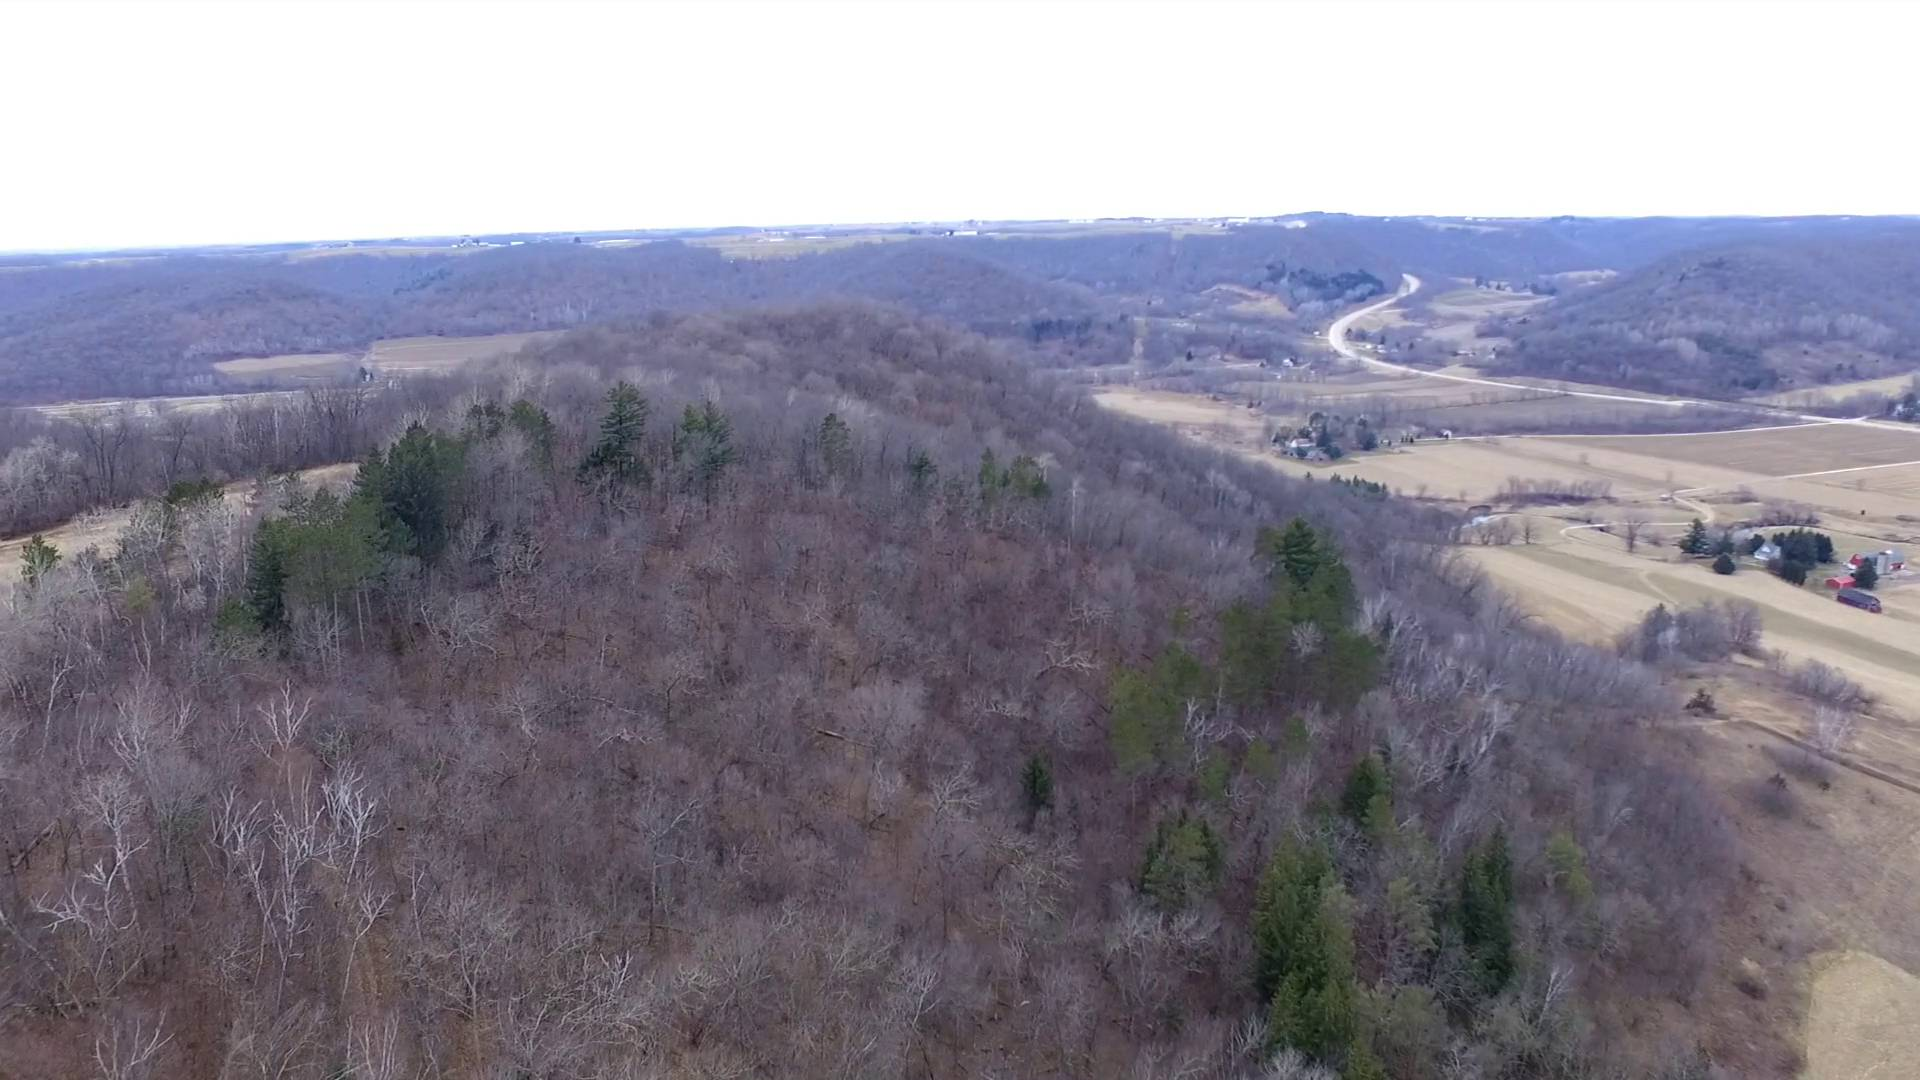 Big Property Potential on Micro Deer Hunting Parcels